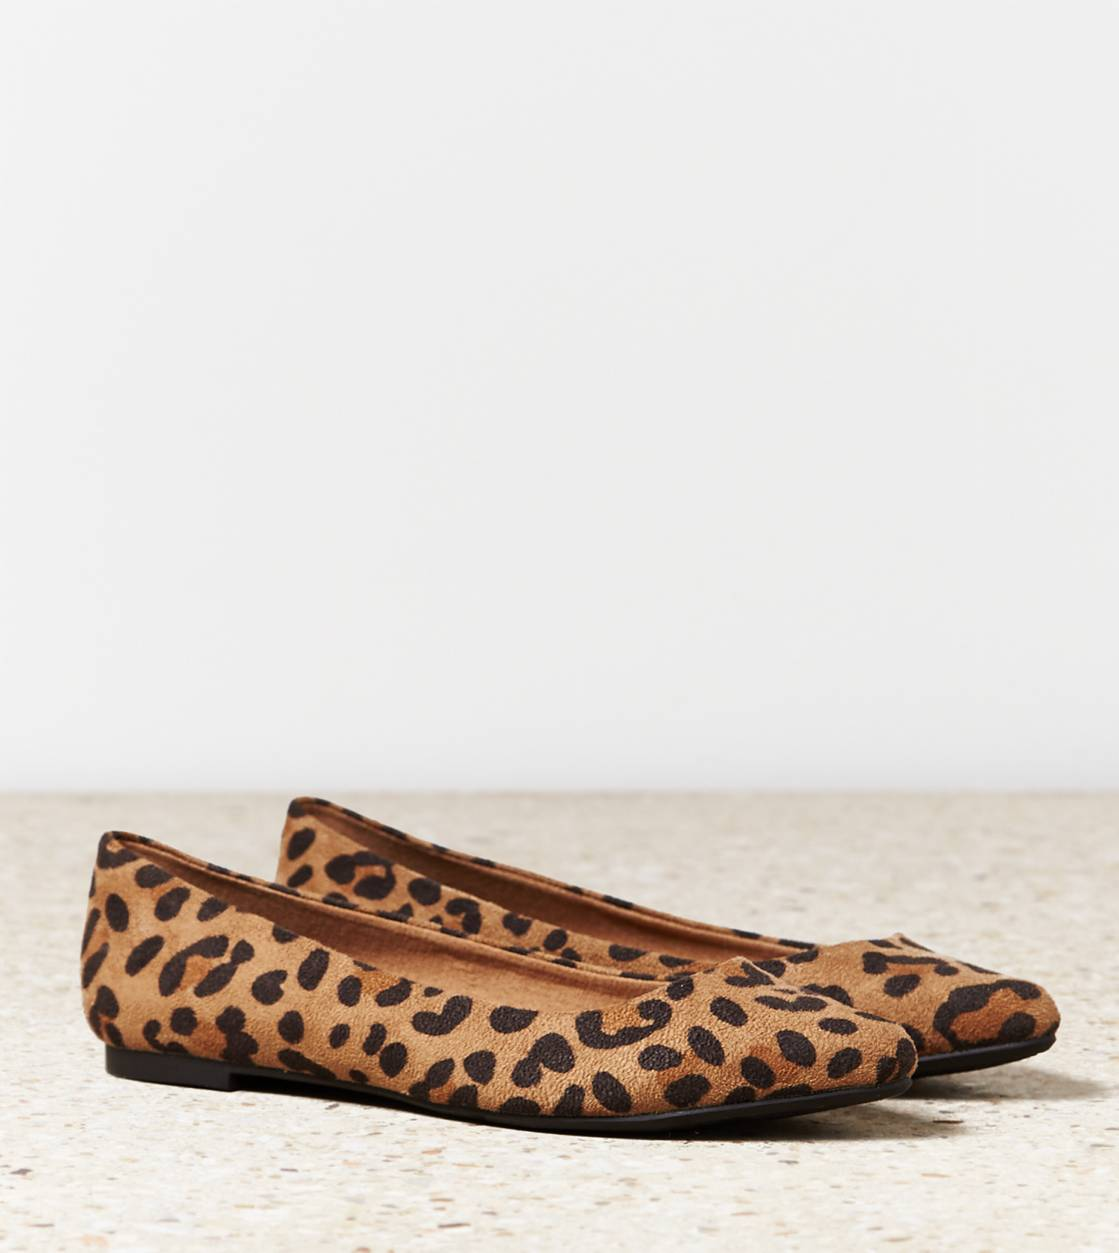 Shoes Leopard Print Flats Shop For Shoes Leopard Print Flats On Wheretoget